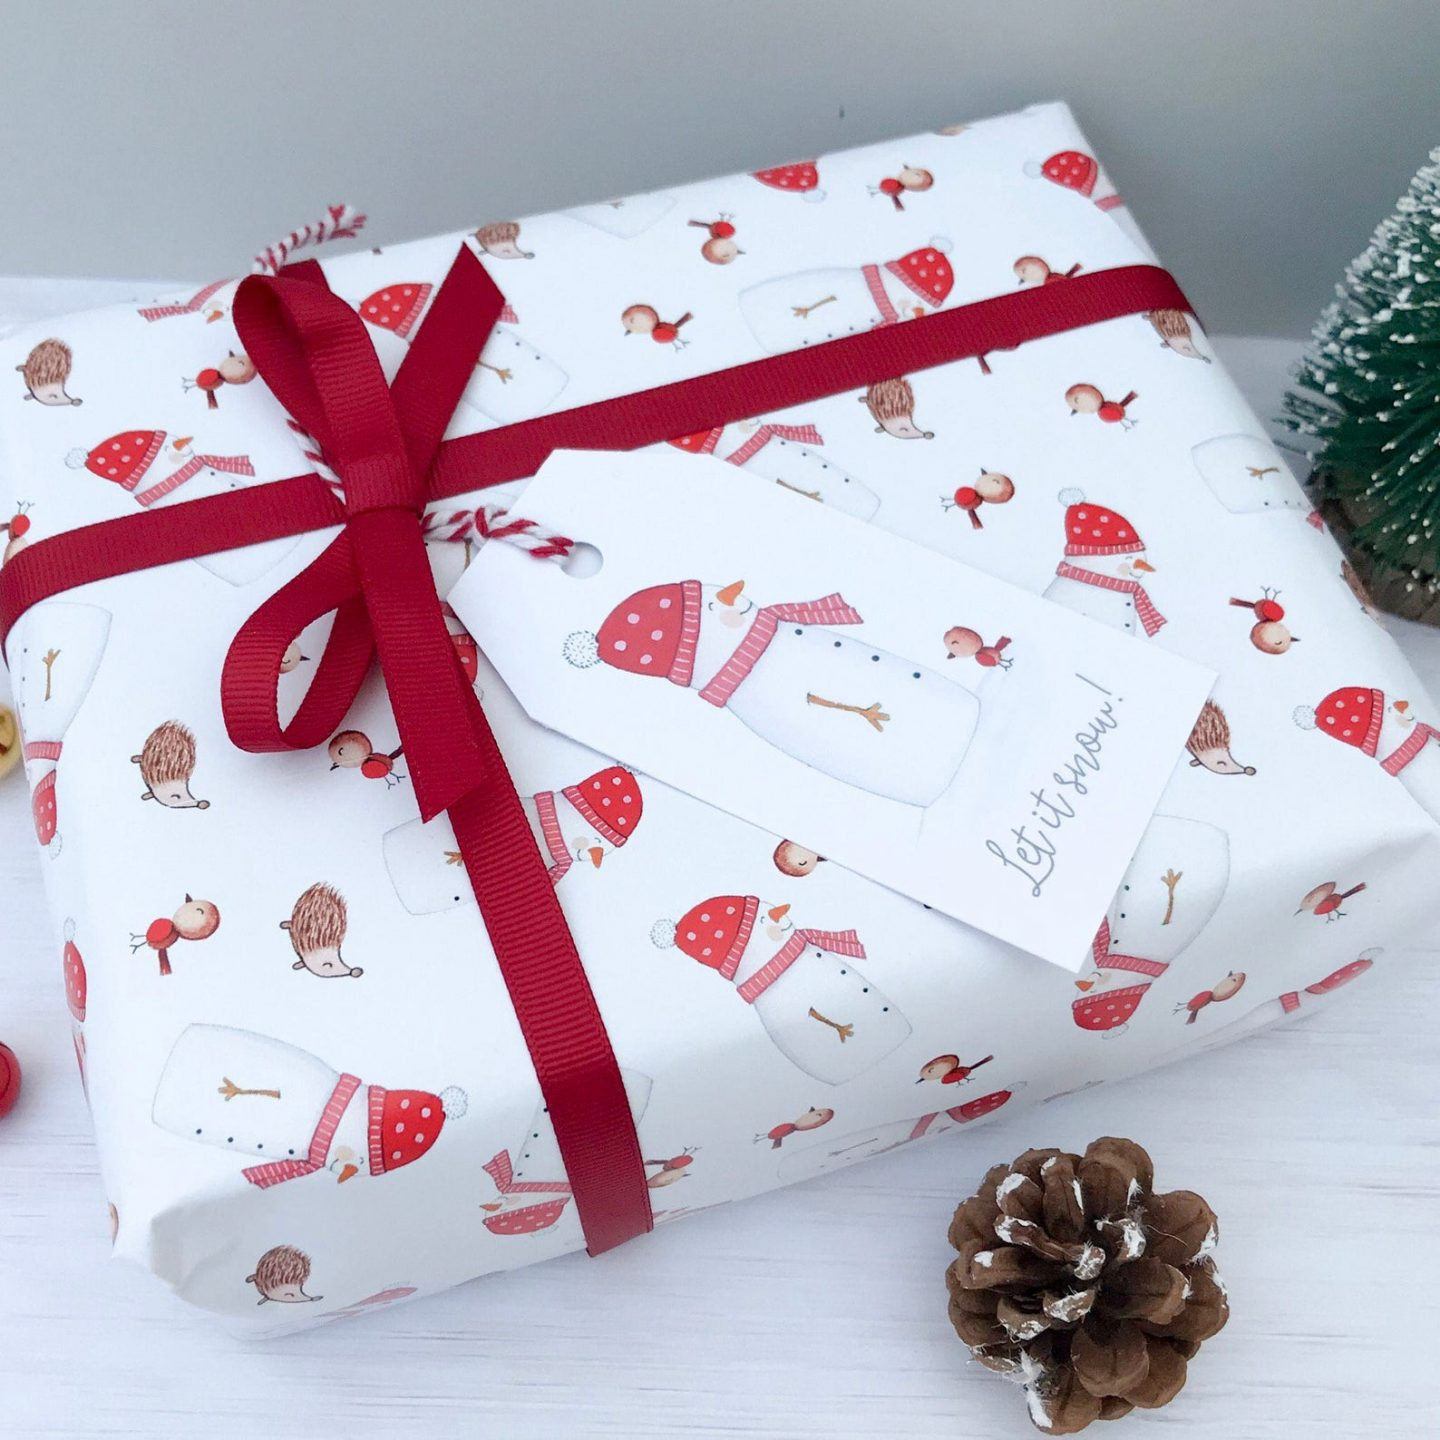 Cute white and red Christmas gift wrapping paper with snowman